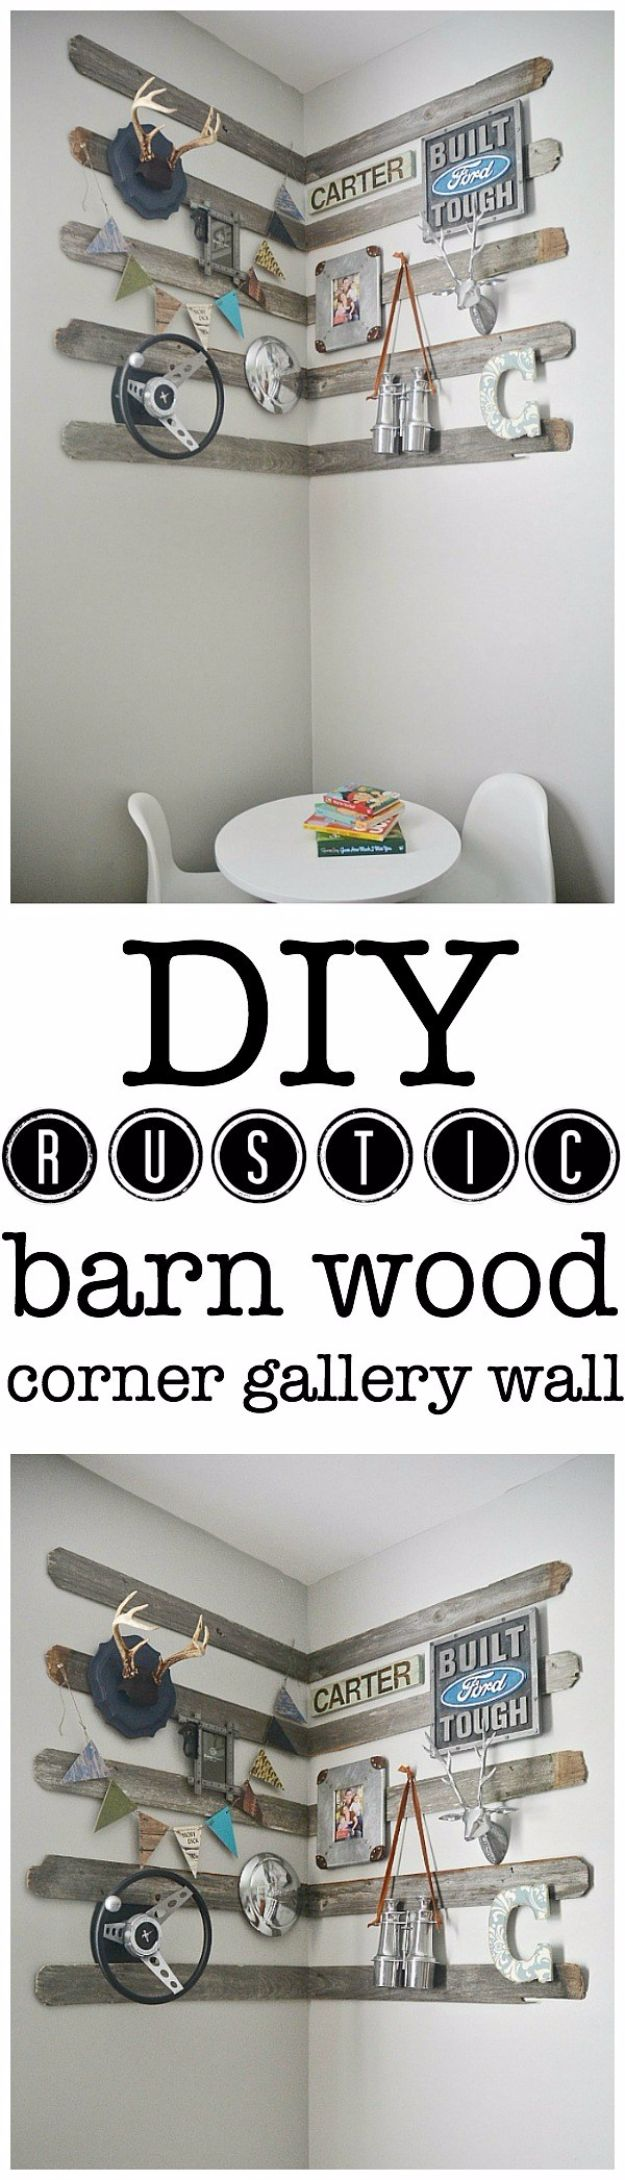 Rustic Wall Art Ideas - DIY Rustic Barn Wood Corner Gallery Wall - DIY Farmhouse Wall Art and Vintage Decor for Walls - Country Crafts and Rustic Home Decor Made Easy With Instructions and Tutorials - String Art, Repurposed Pallet Projects, Mason Jar Crafts, Vintage Signs, Word Art and Letters, Monograms and Sewing Projects